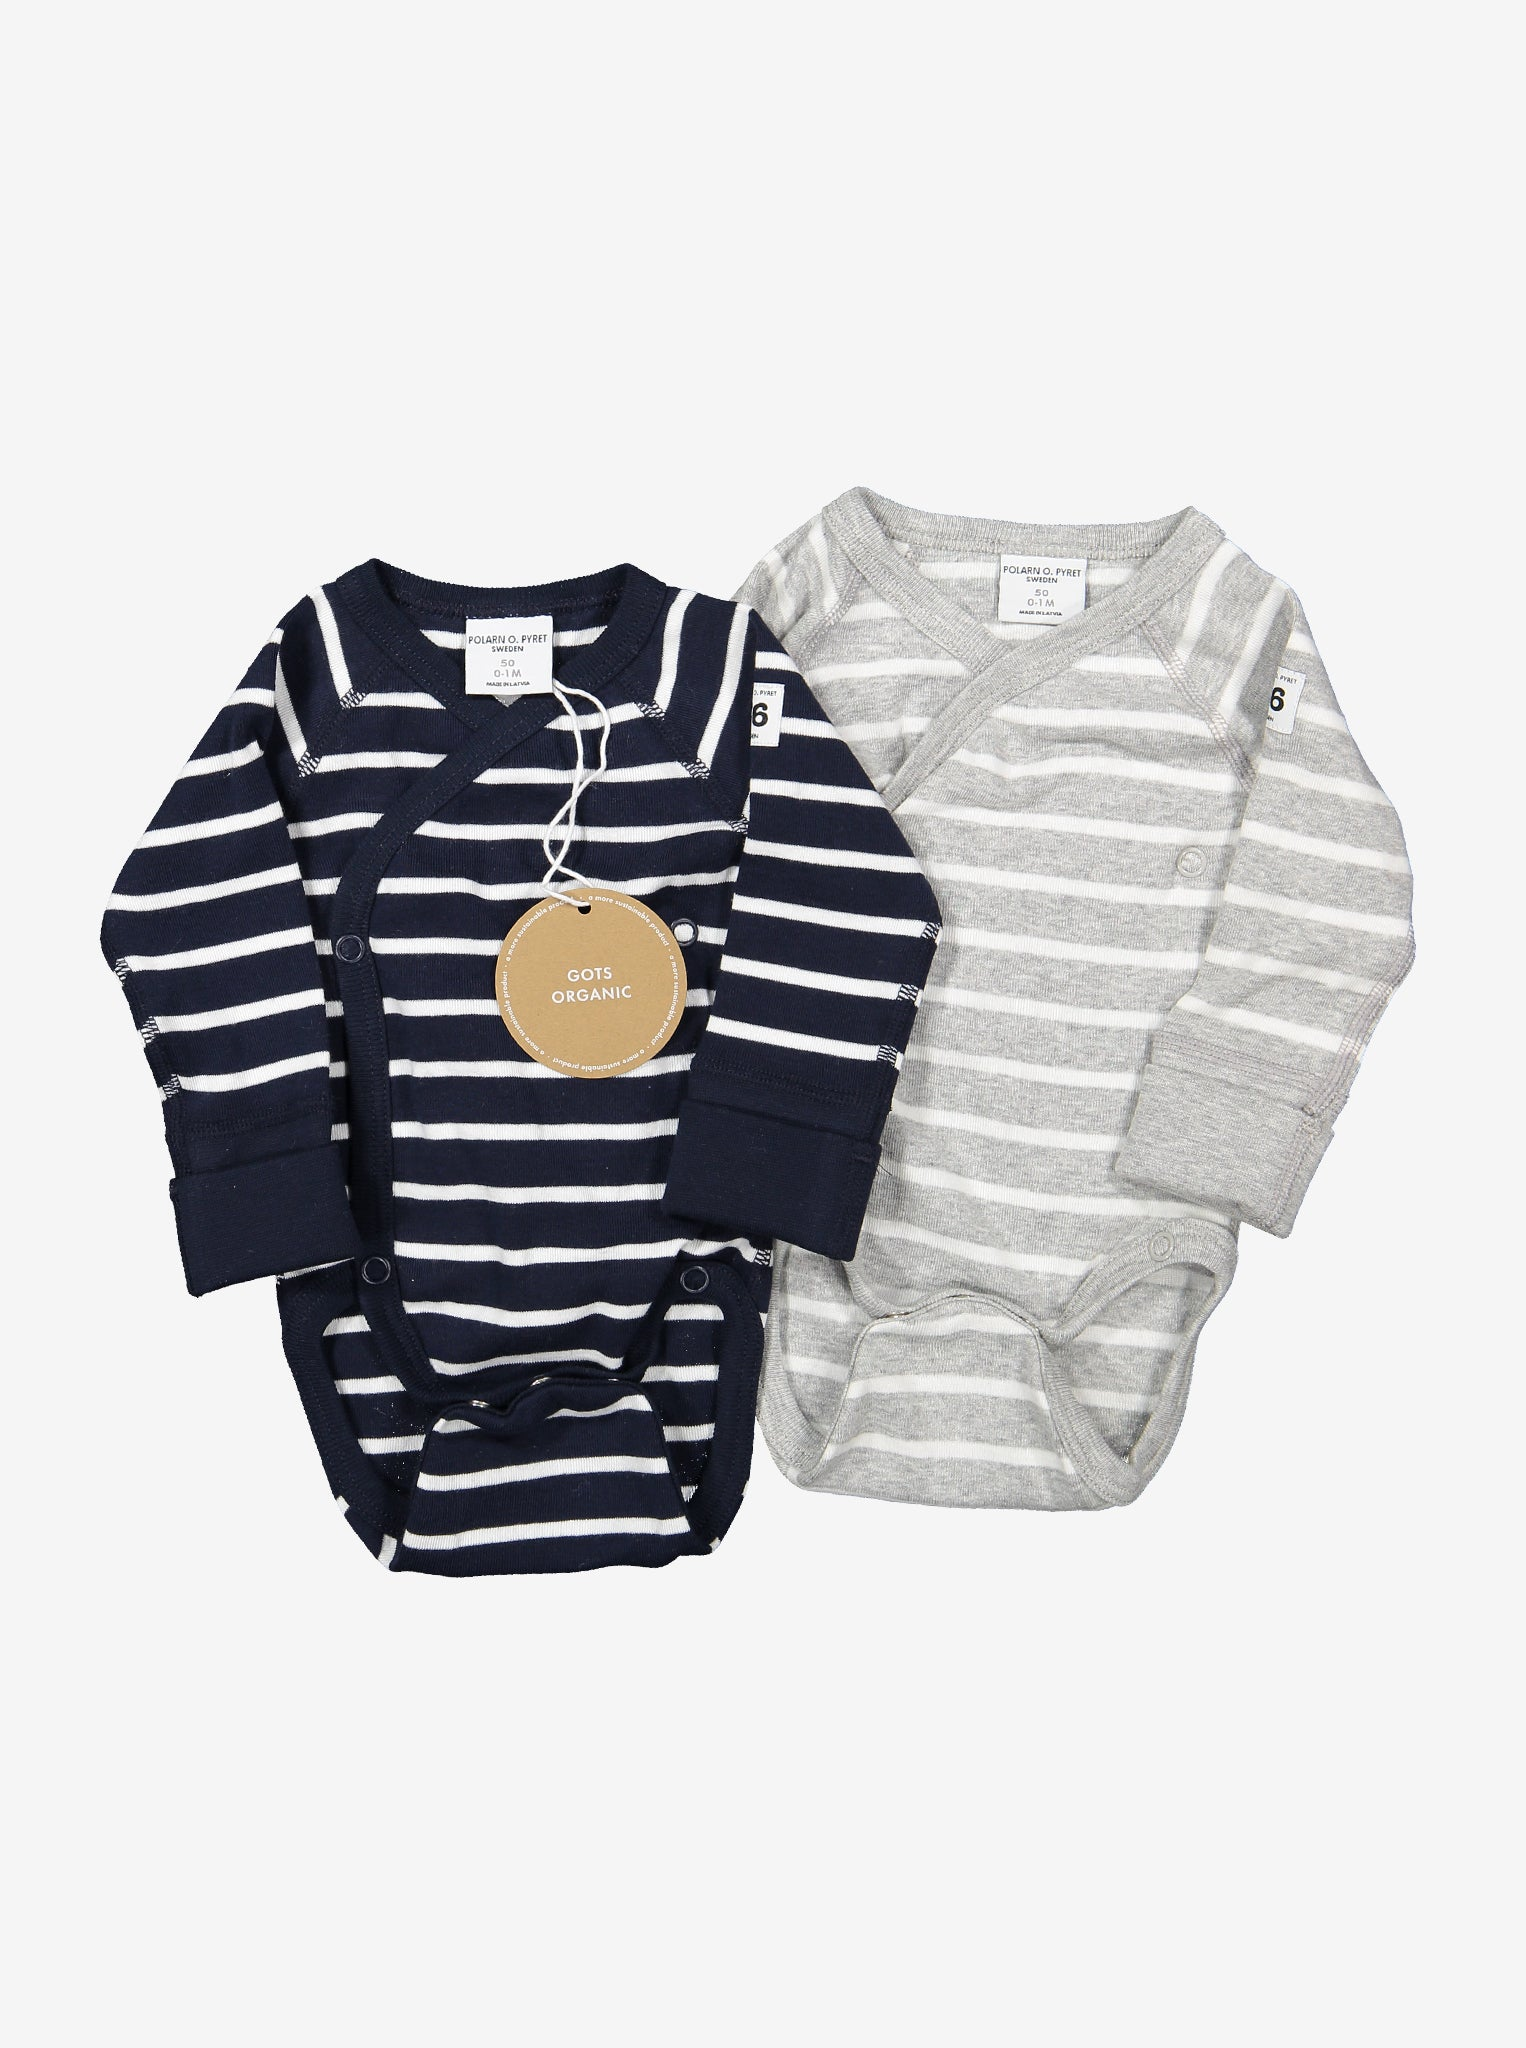 Two wraparound babygrows made from organic cotton. On the left is a navy blue & white striped babygrow, on the right is a white and grey striped babygrow.